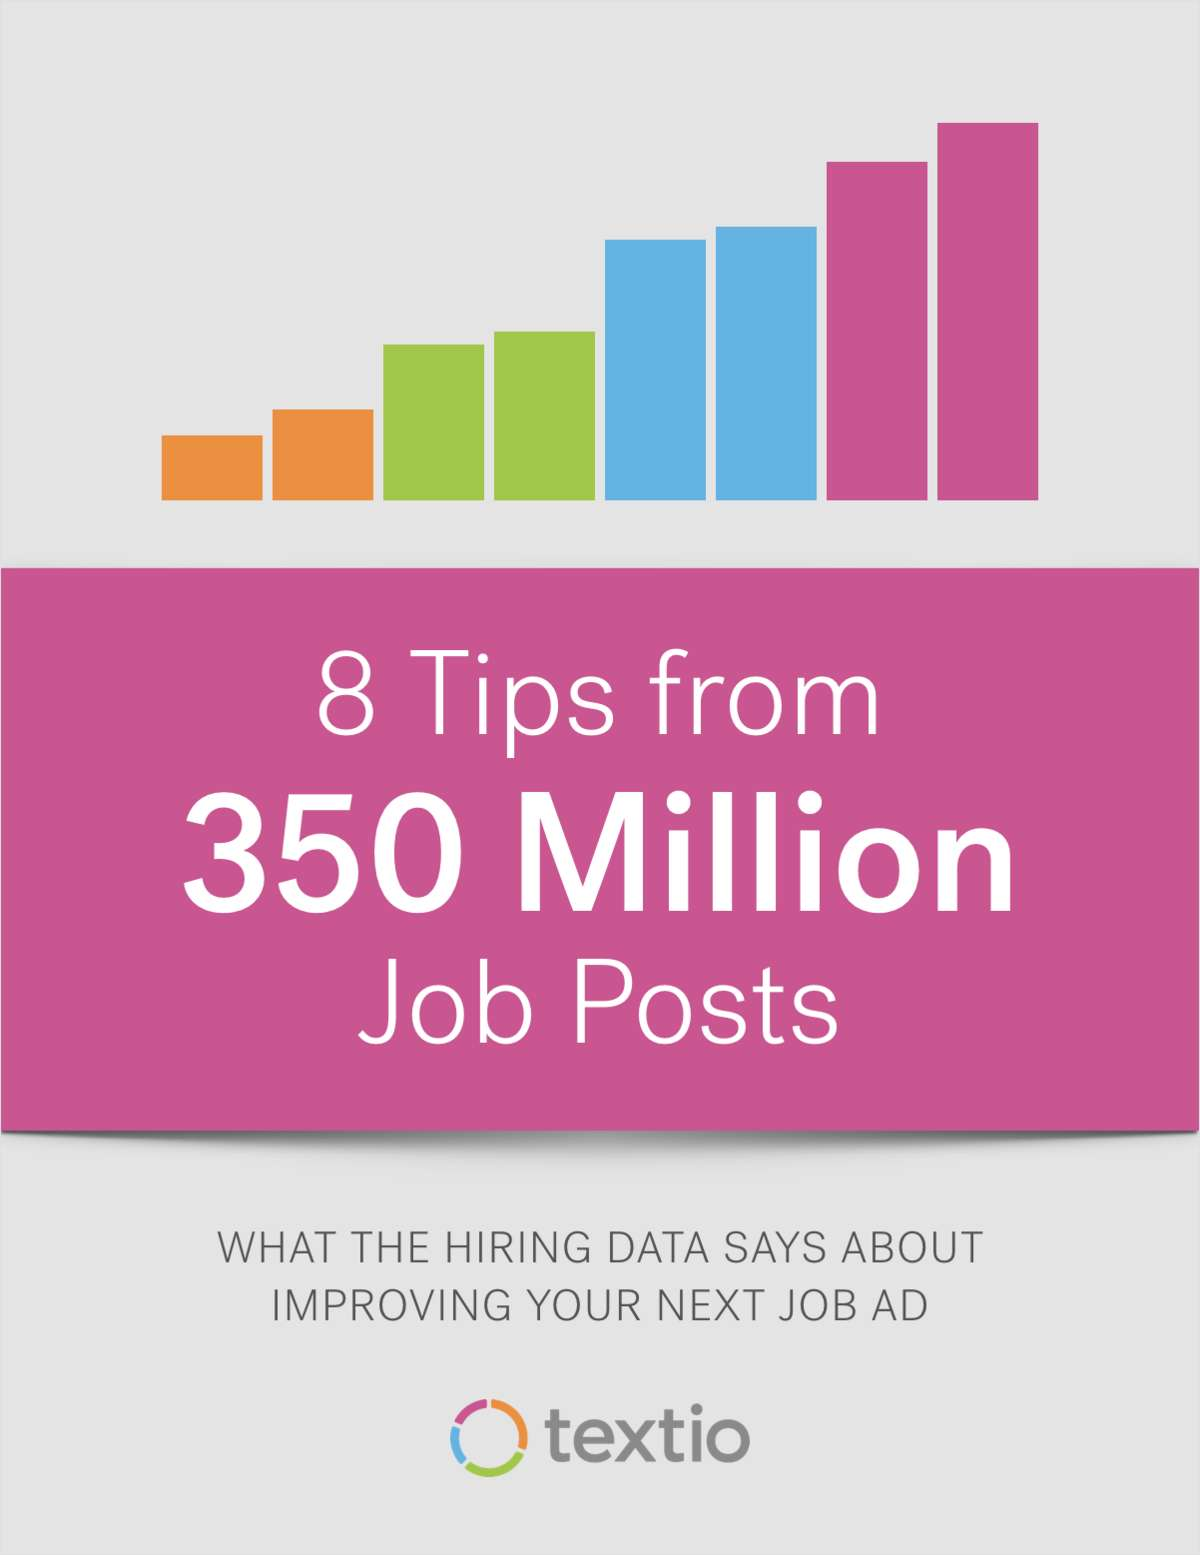 8 Tips from 350 Million Job Posts